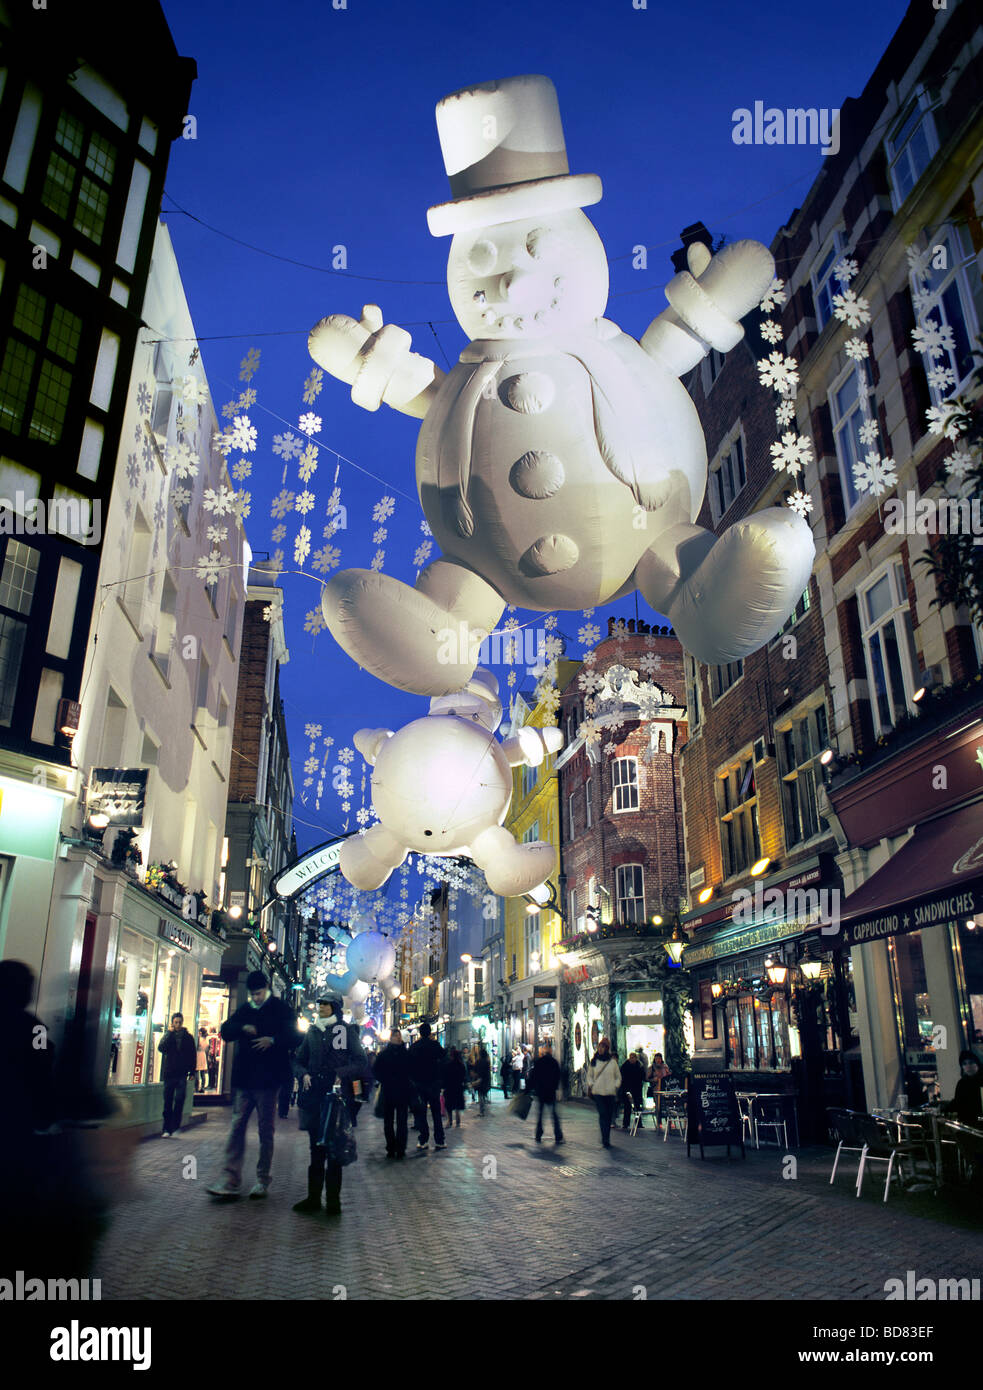 Christmas decorations, including giant inflatable snowmen, lit up at night in Carnaby Street, in London's West - Stock Image